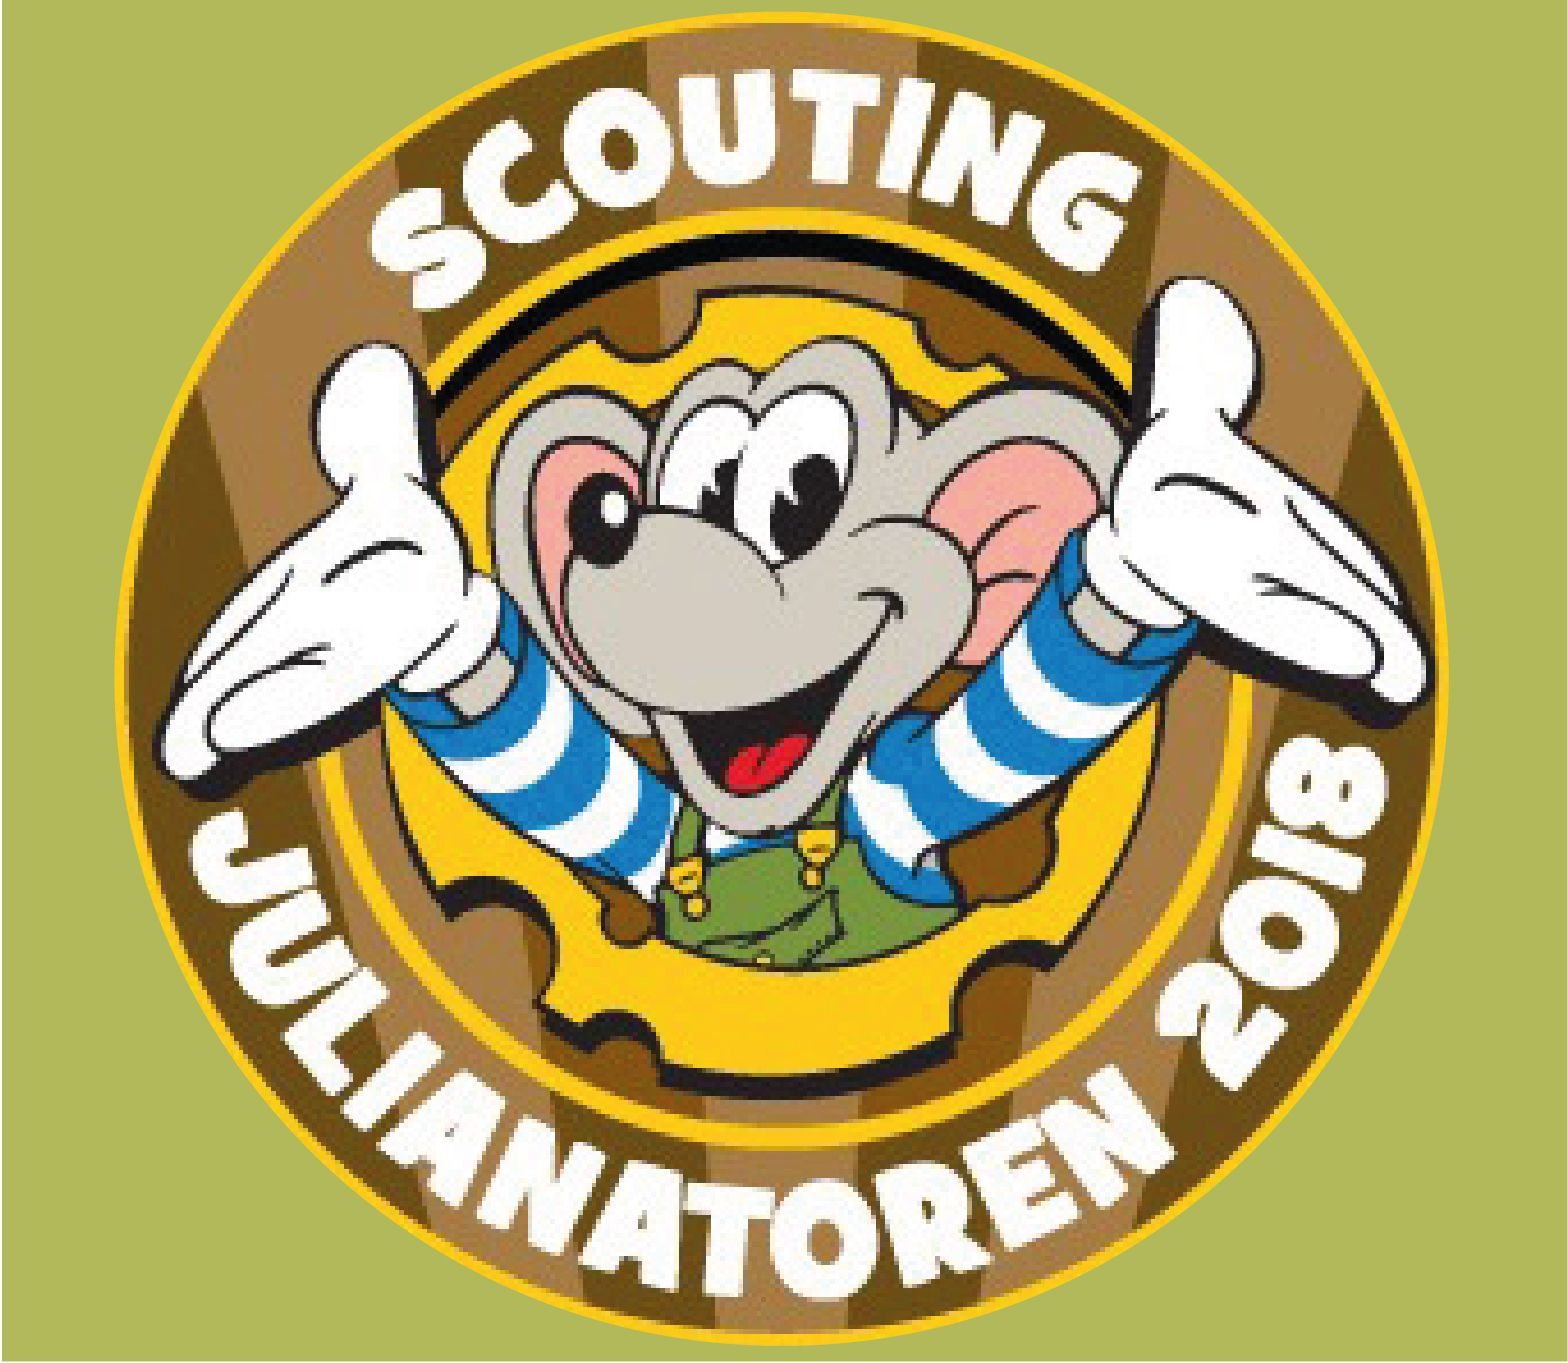 Scouting Julianatoren 2018